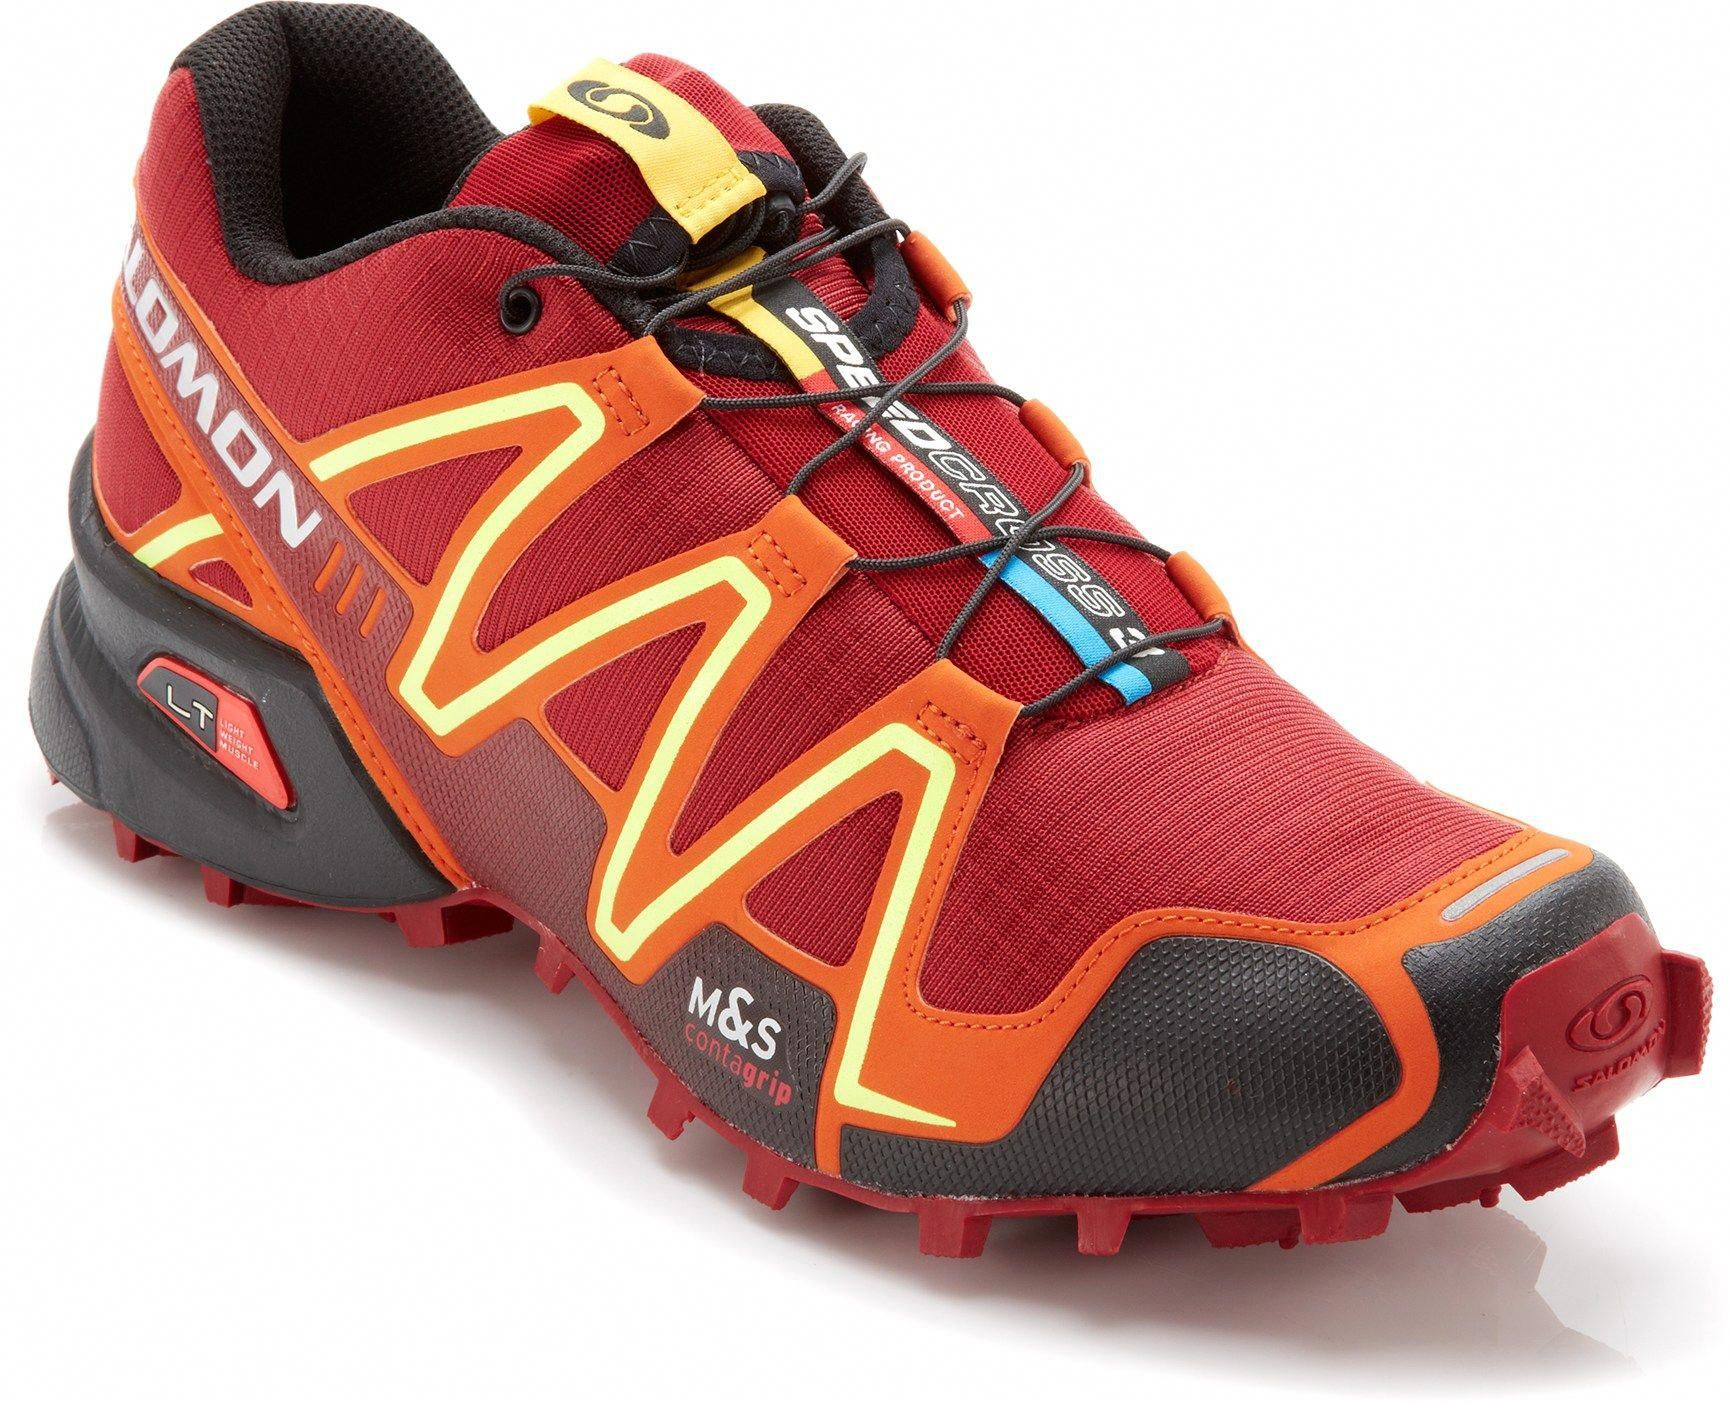 Mens trail running shoes, Trail running